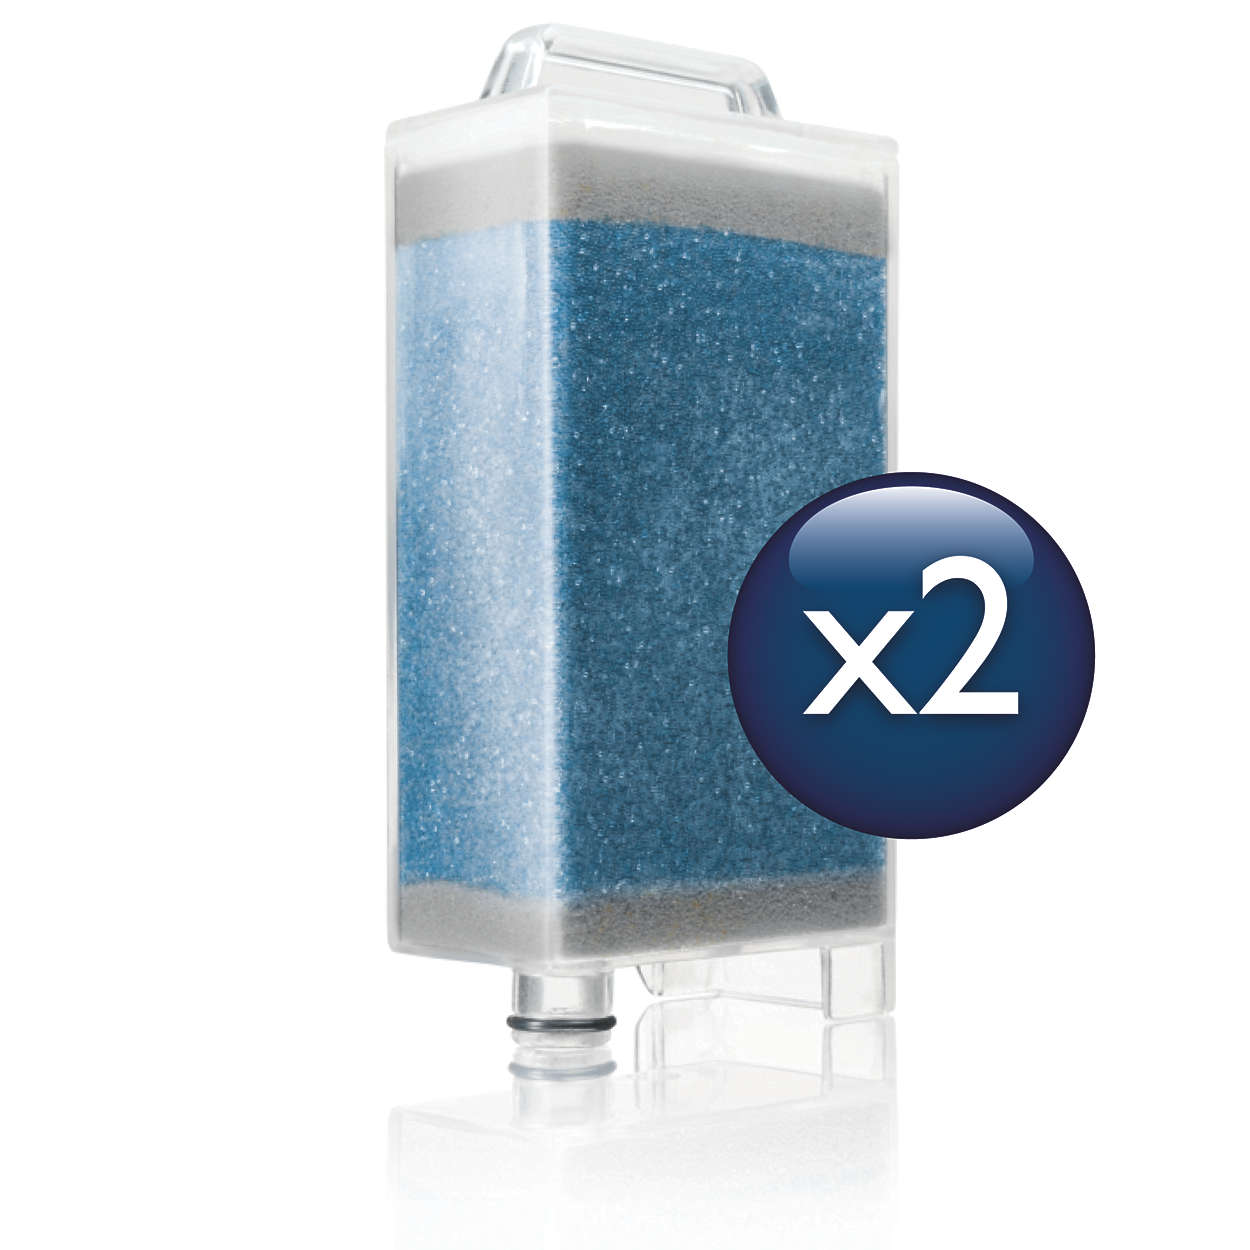 Anti-calc cartridges for all WardrobeCare models